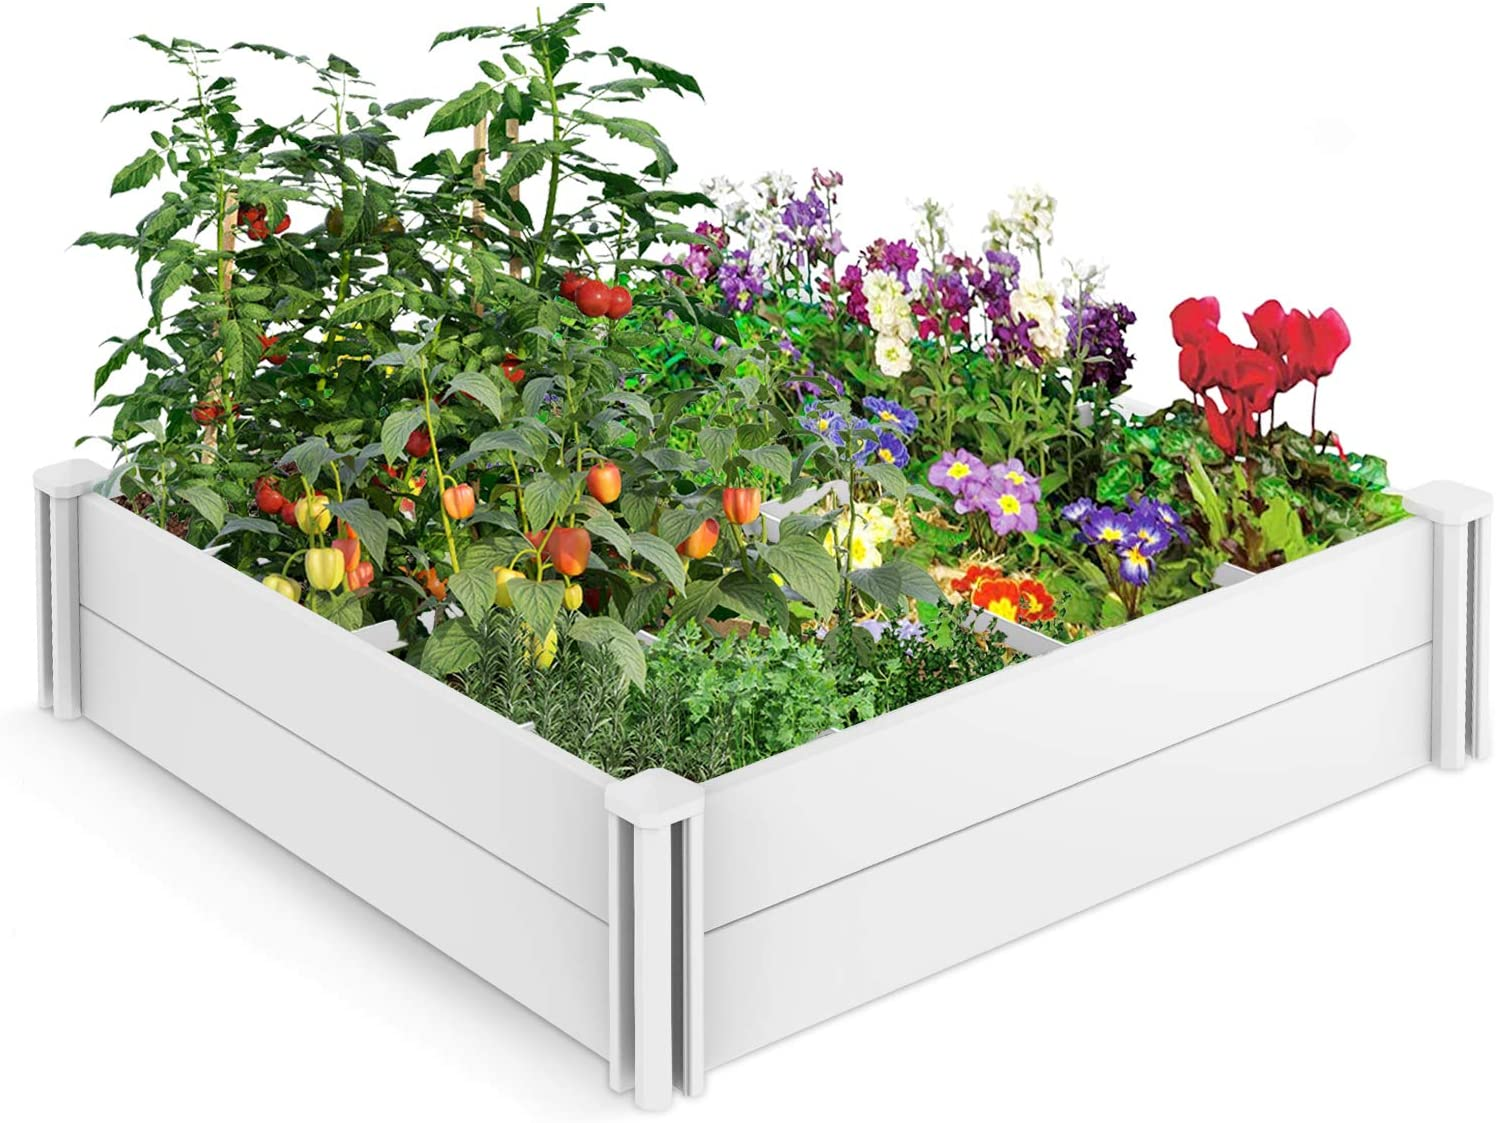 Lovinouse Premium 4 x 4 ft Raised Garden Beds with Grow Grid, for Vegetables, Flowers, Herbs, Plants, Large Vinyl Planting Box, Whelping Box